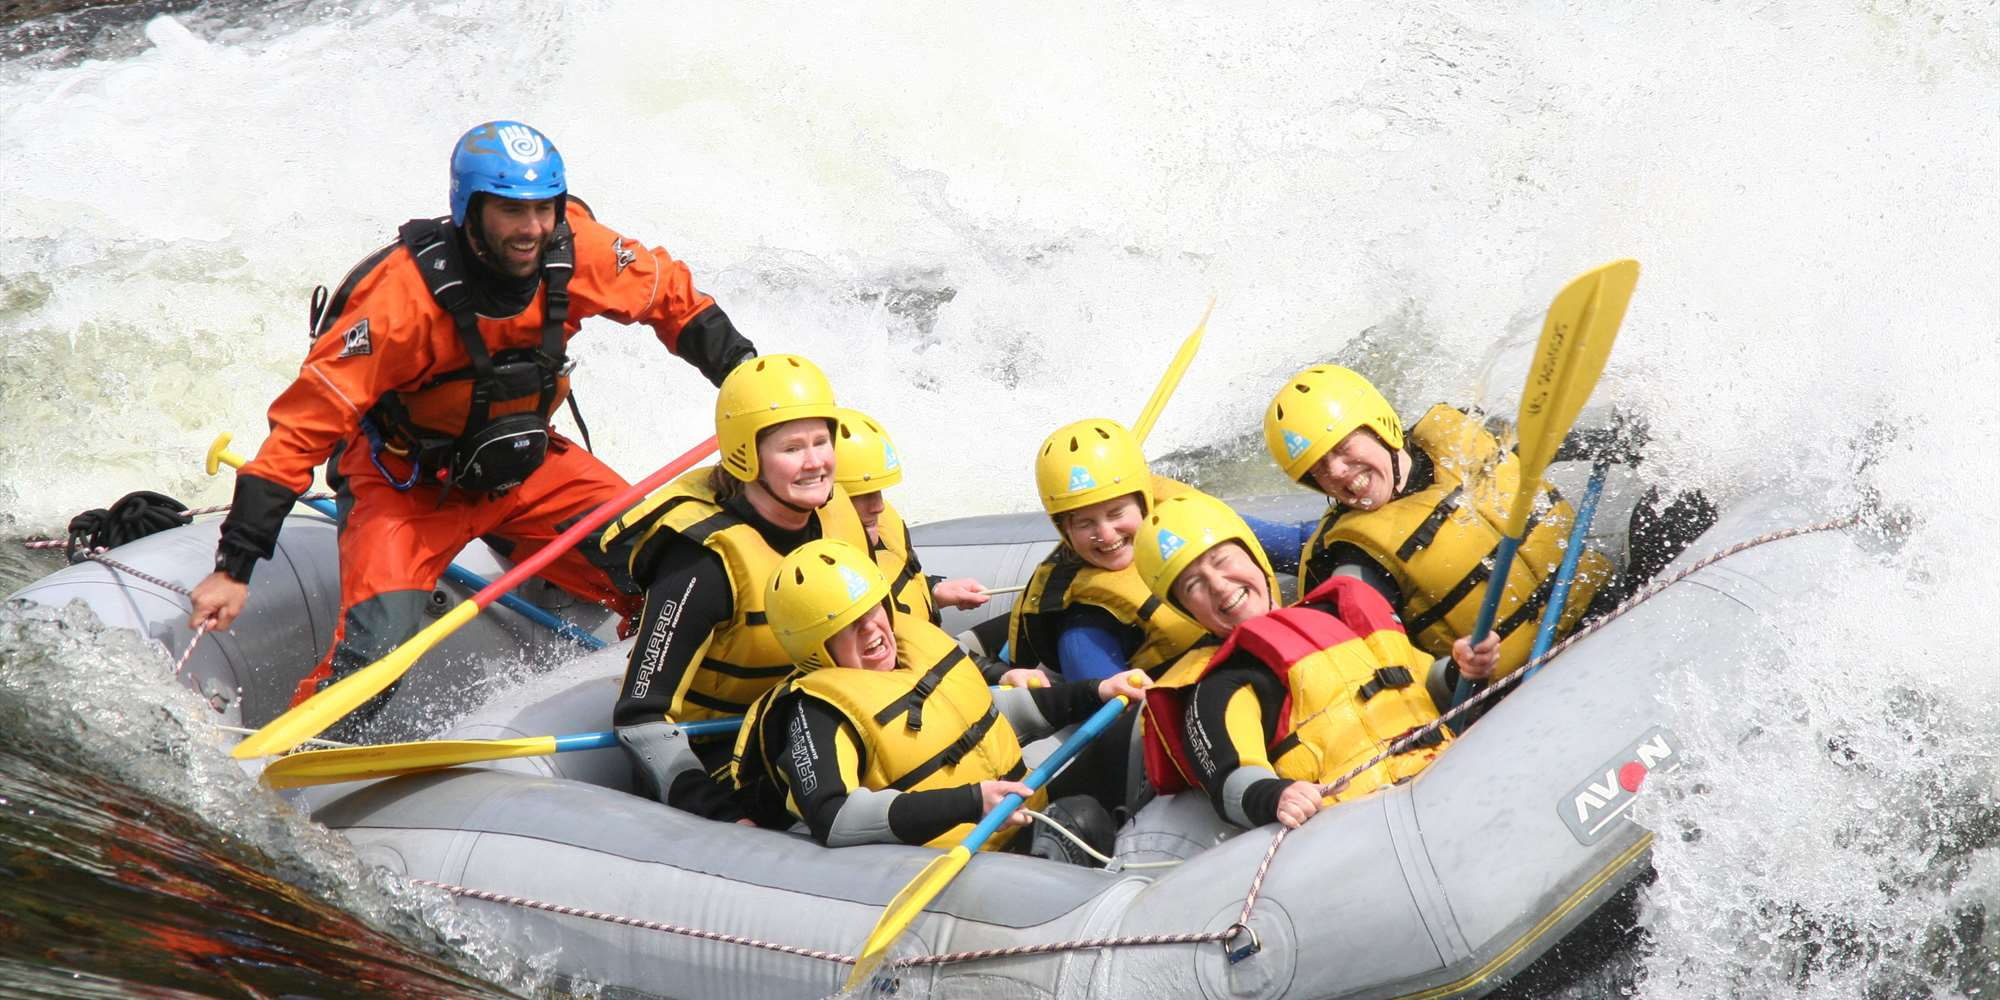 Rafting at Voss